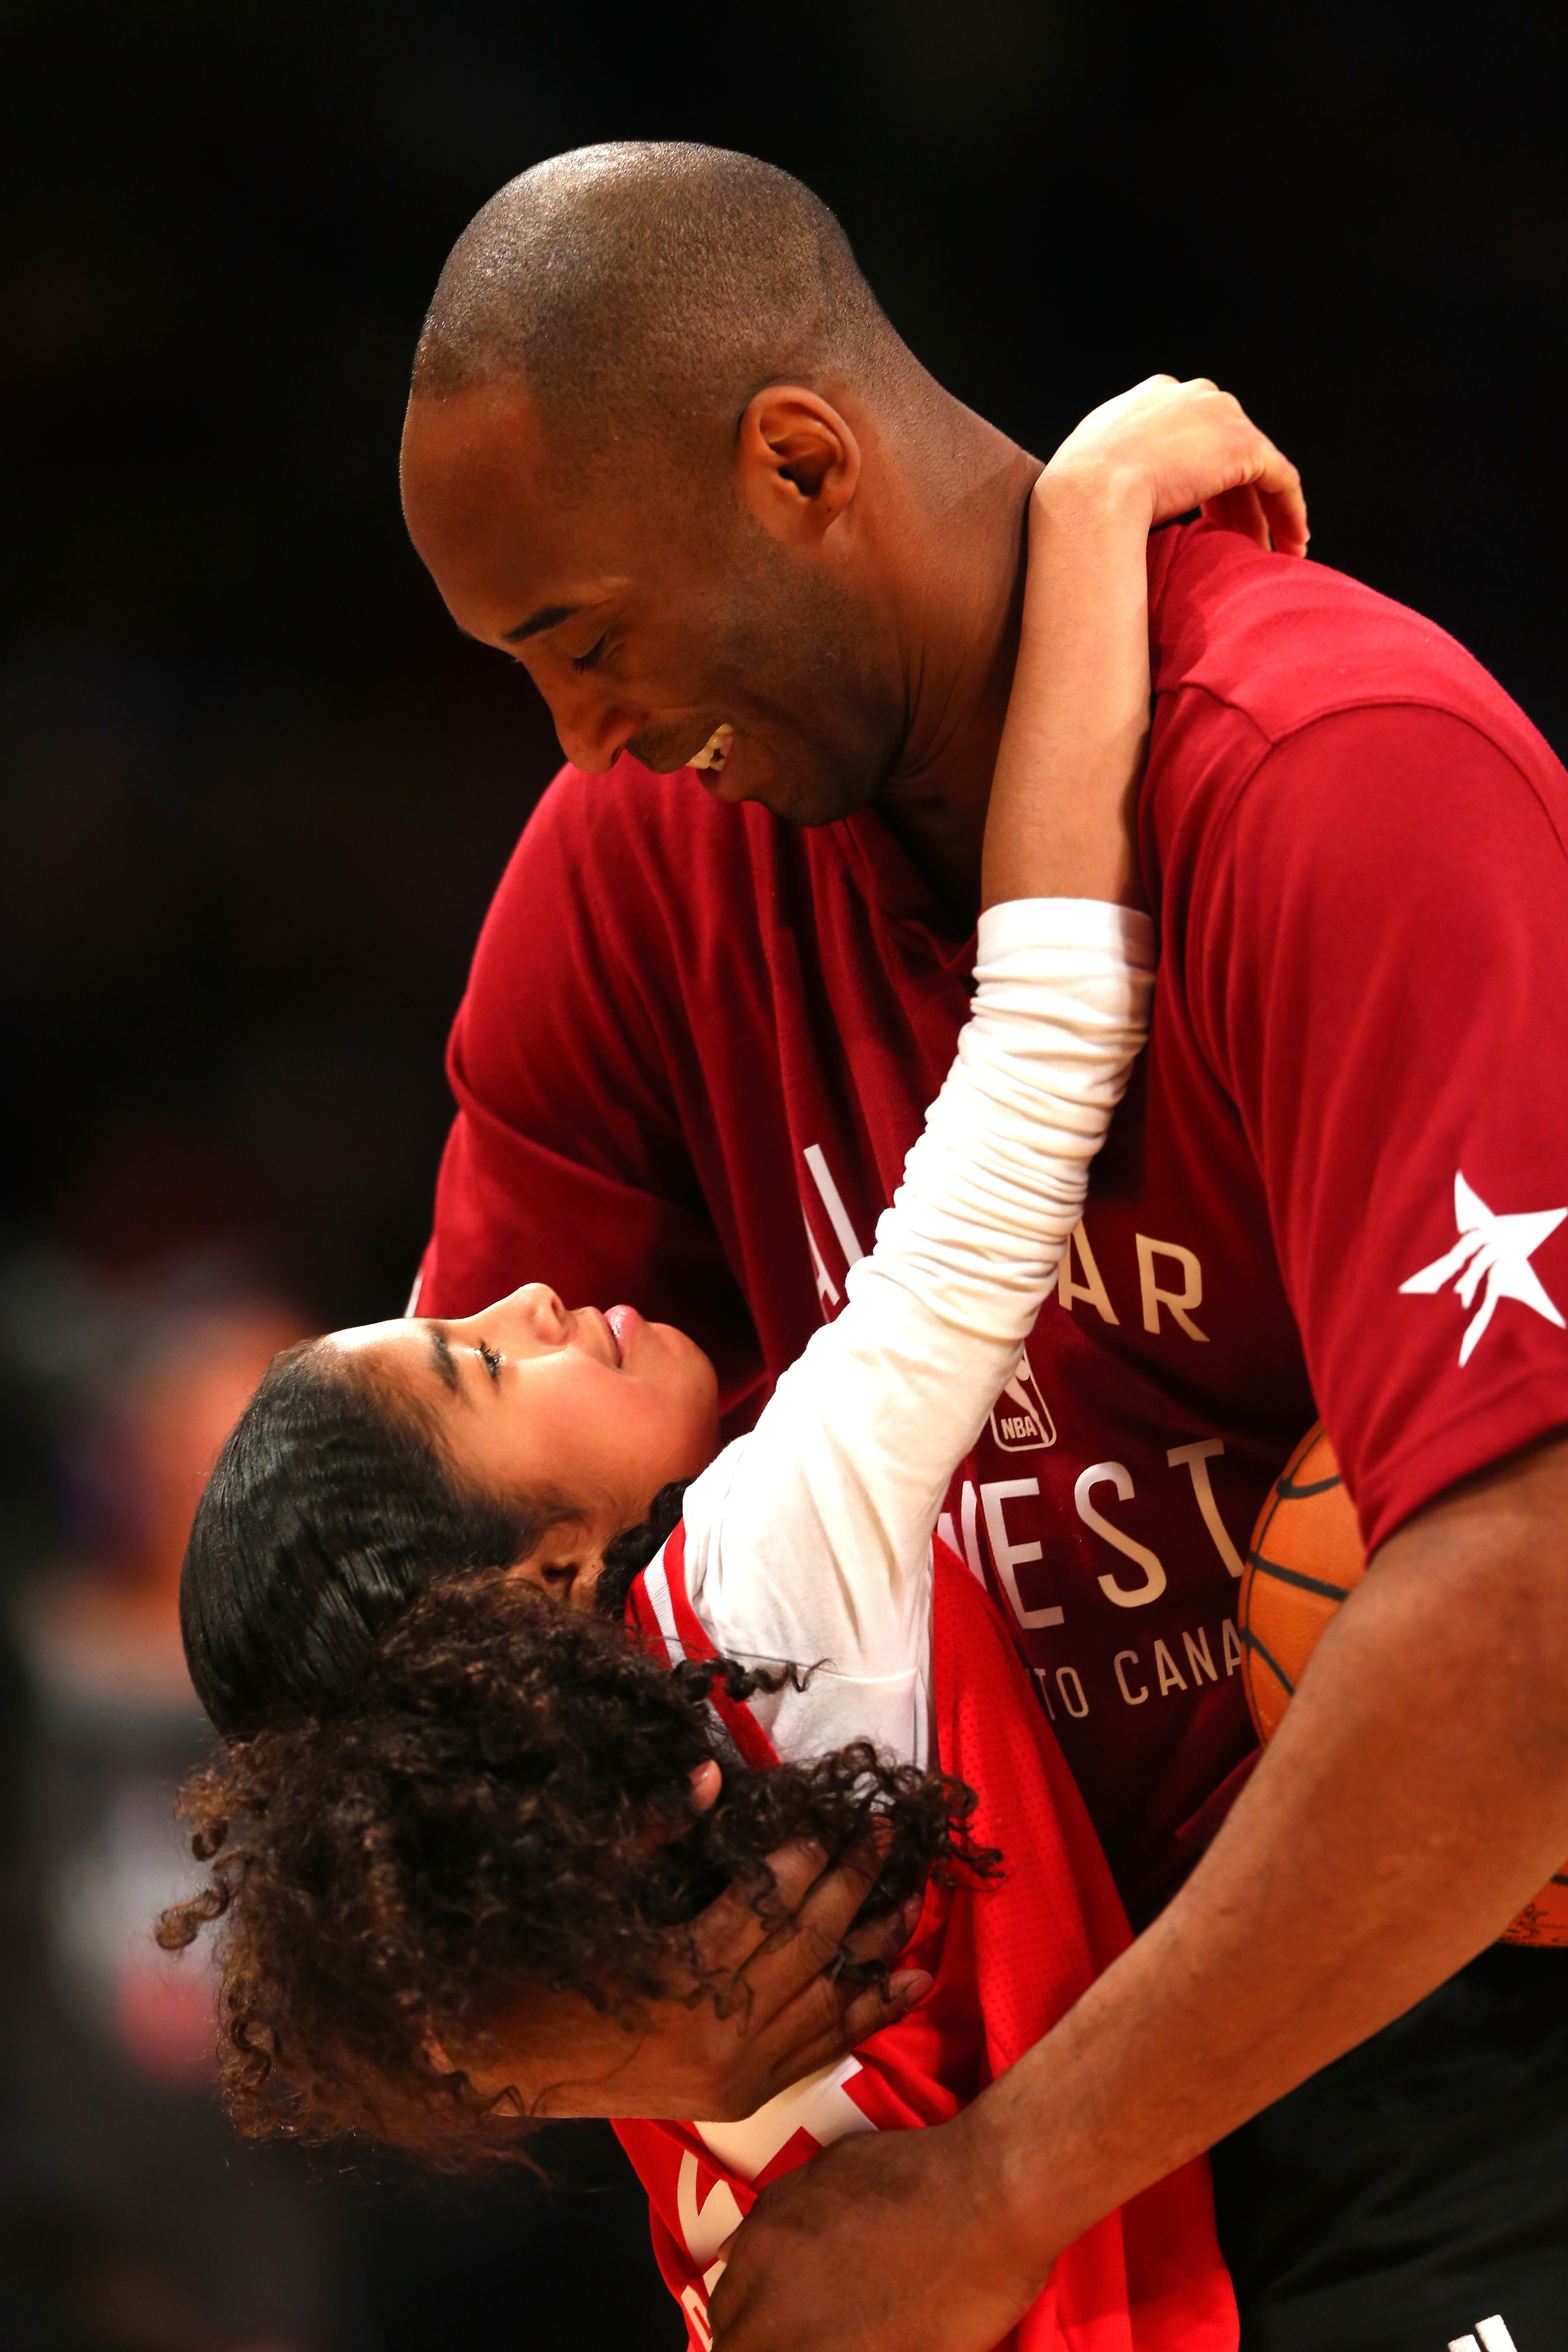 Kobe Bryant holding his daughter Gianna  and laughing with her as she looks up at him